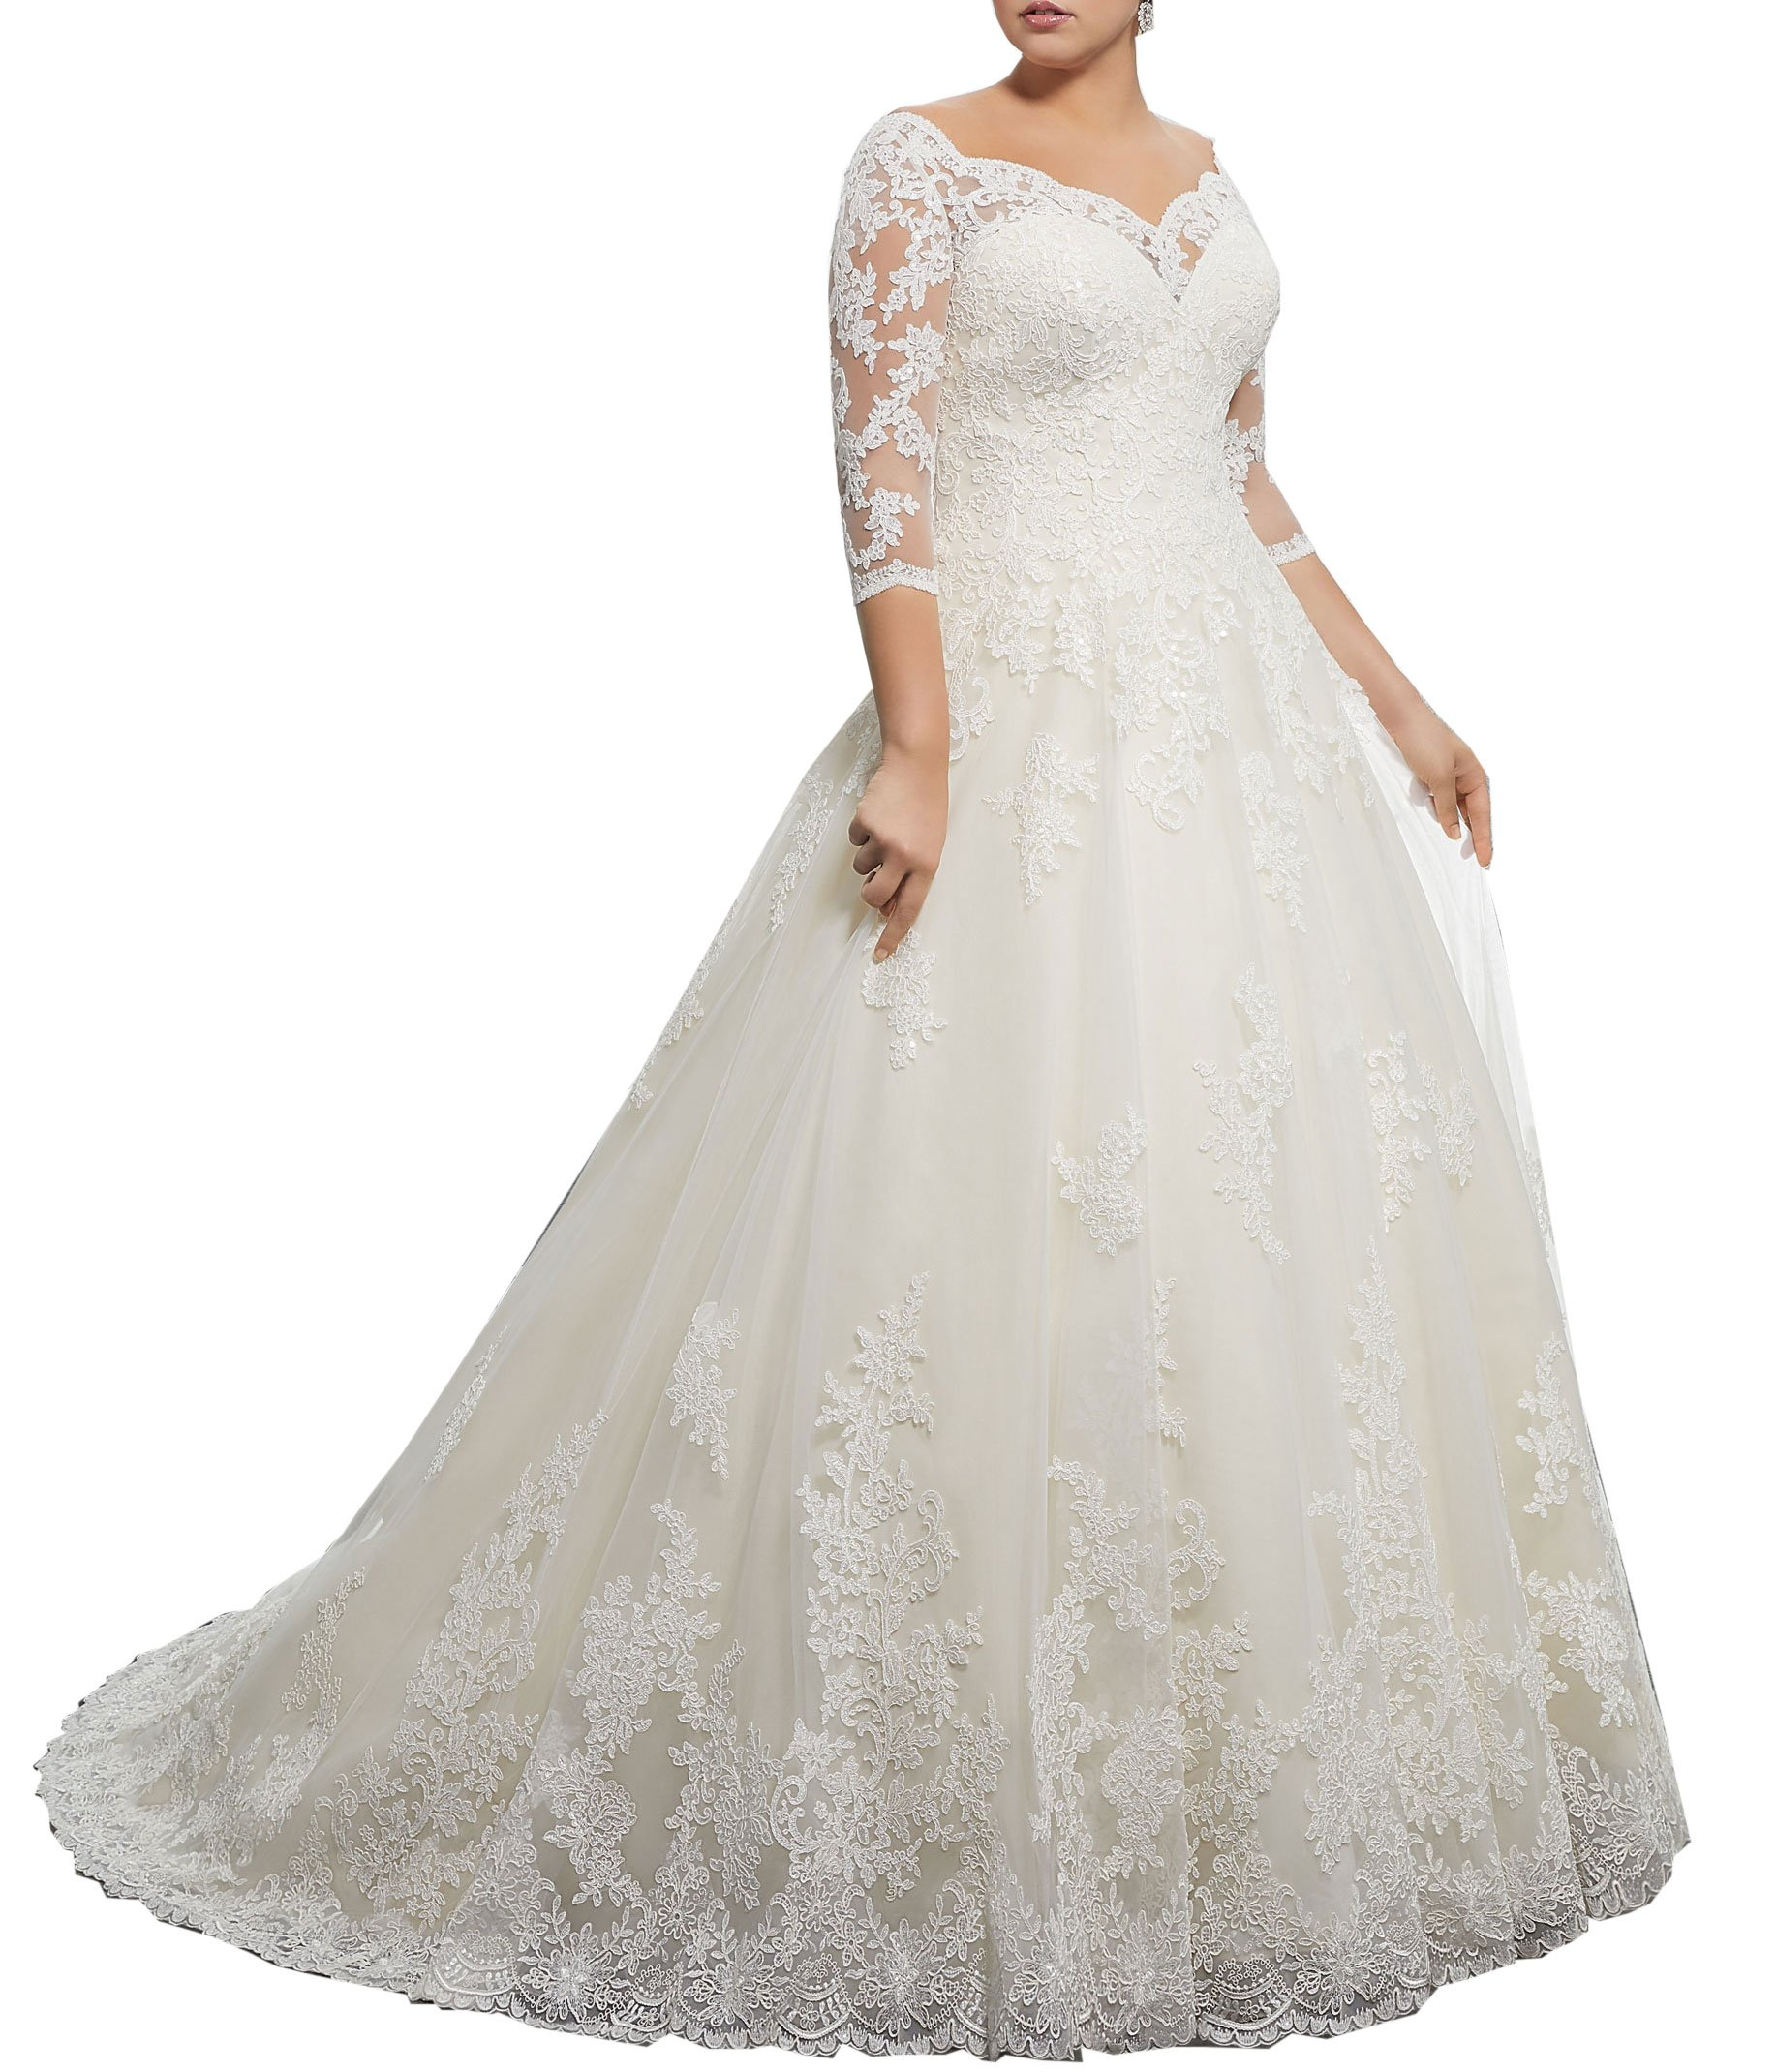 WuliDress Women's Plus Size Bridal Ball Gowns Lace Wedding Dresses with 3/4 Sleeves Ivory 20W by WuliDress (Image #1)